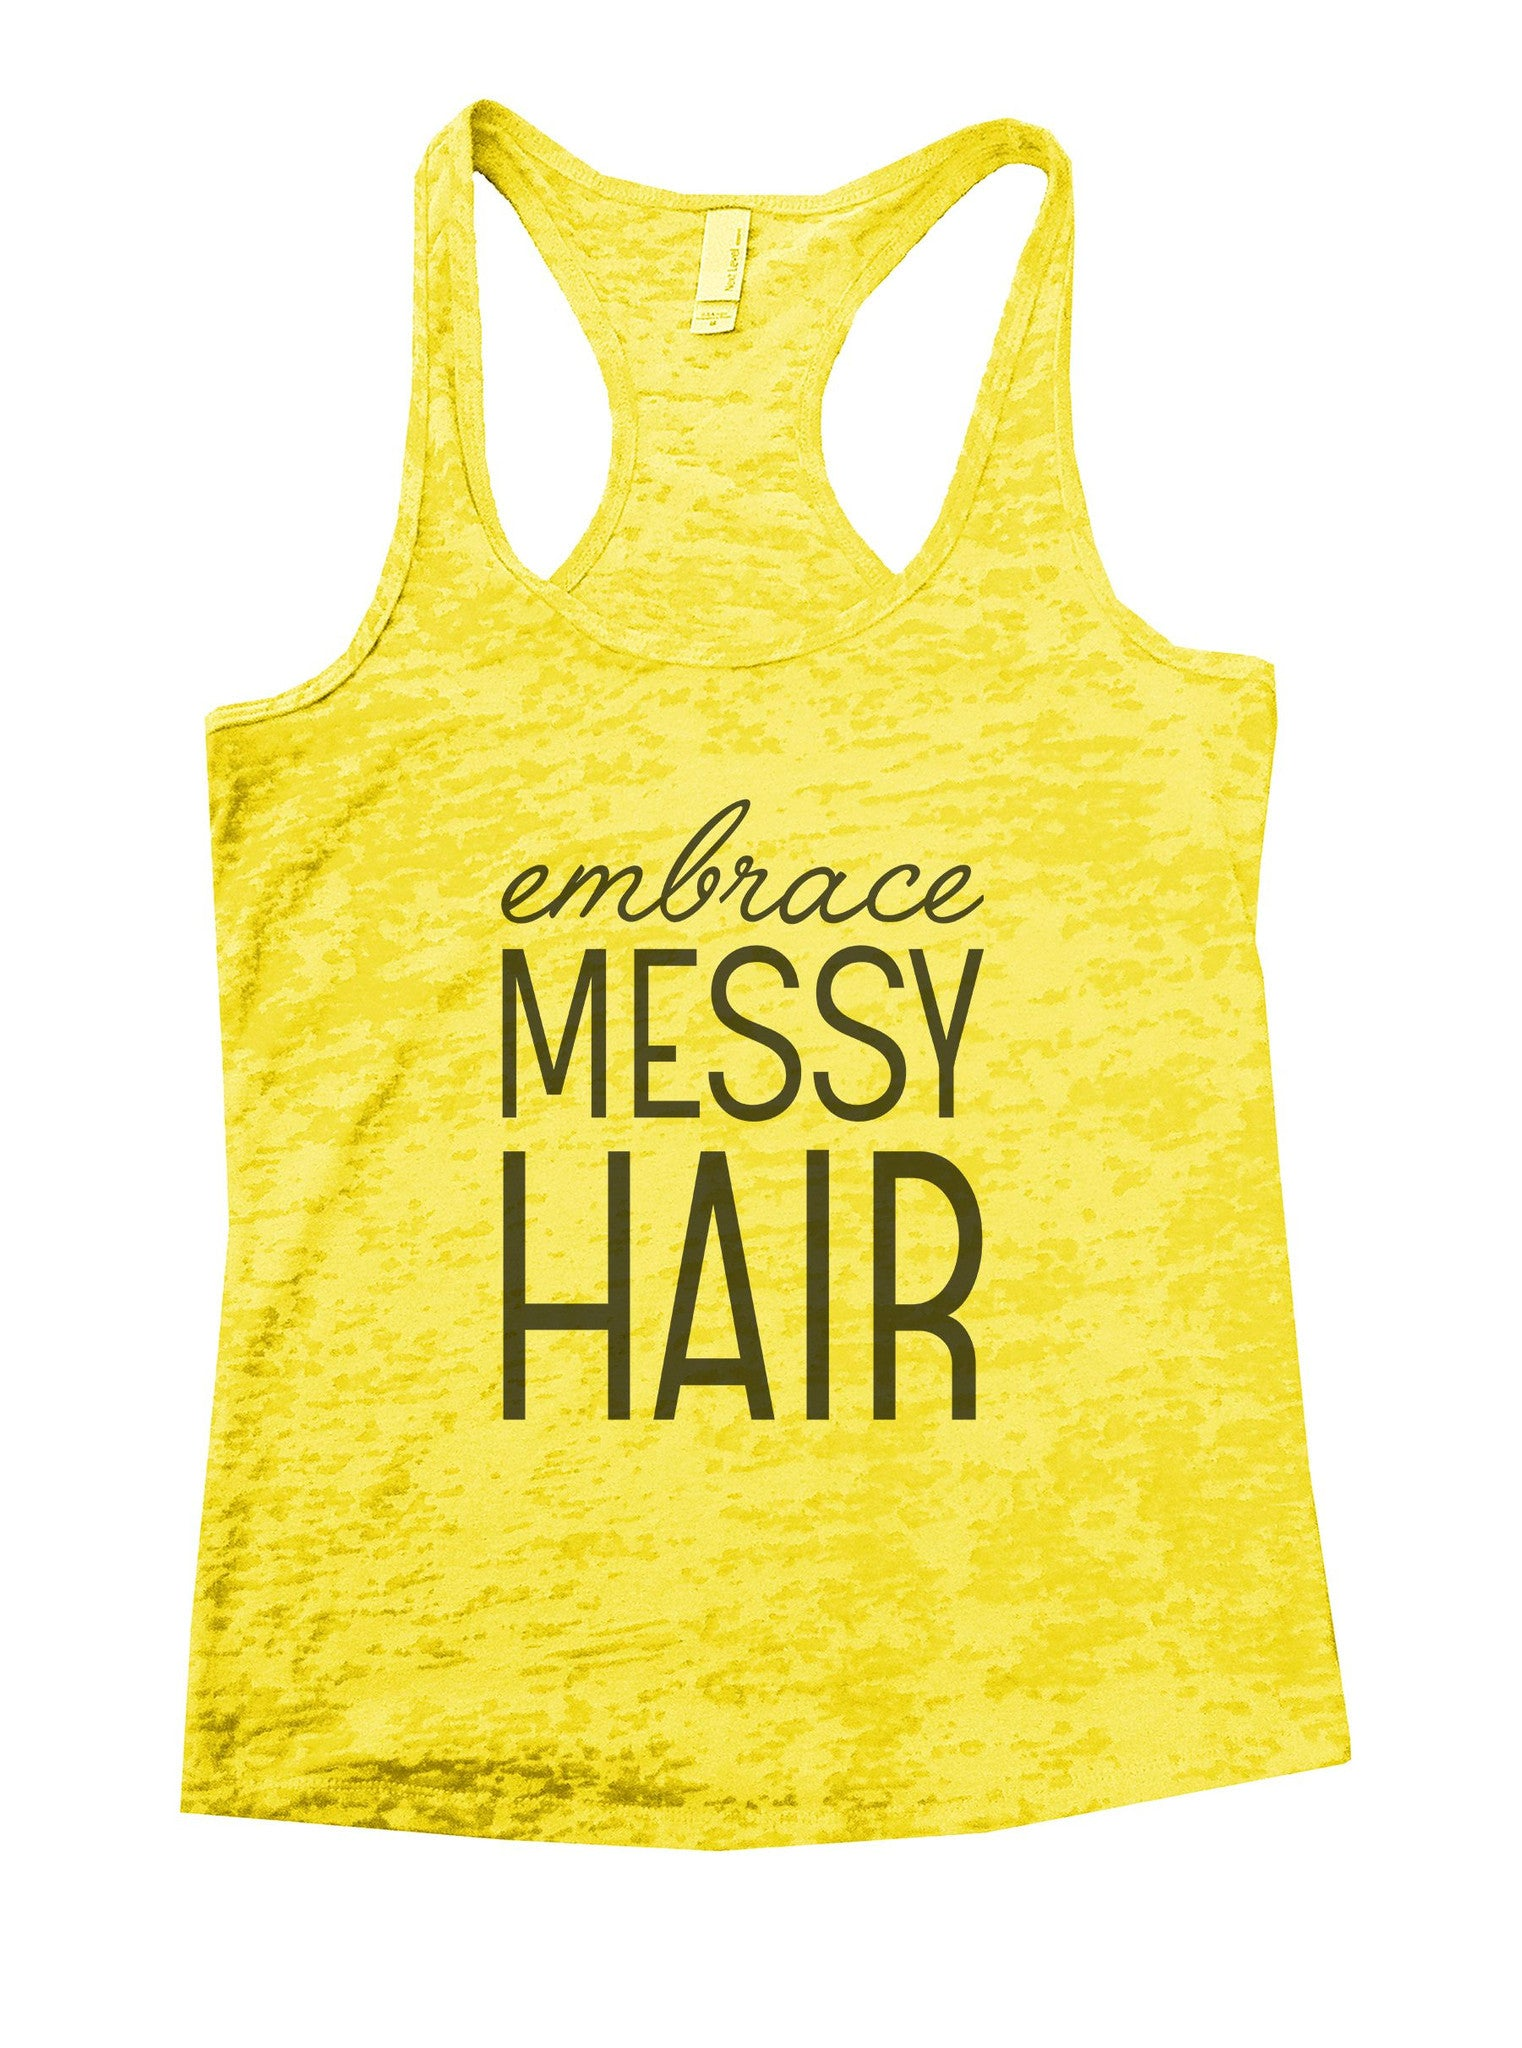 Embrace Messy Hair Burnout Tank Top By BurnoutTankTops.com - 940 - Funny Shirts Tank Tops Burnouts and Triblends  - 7